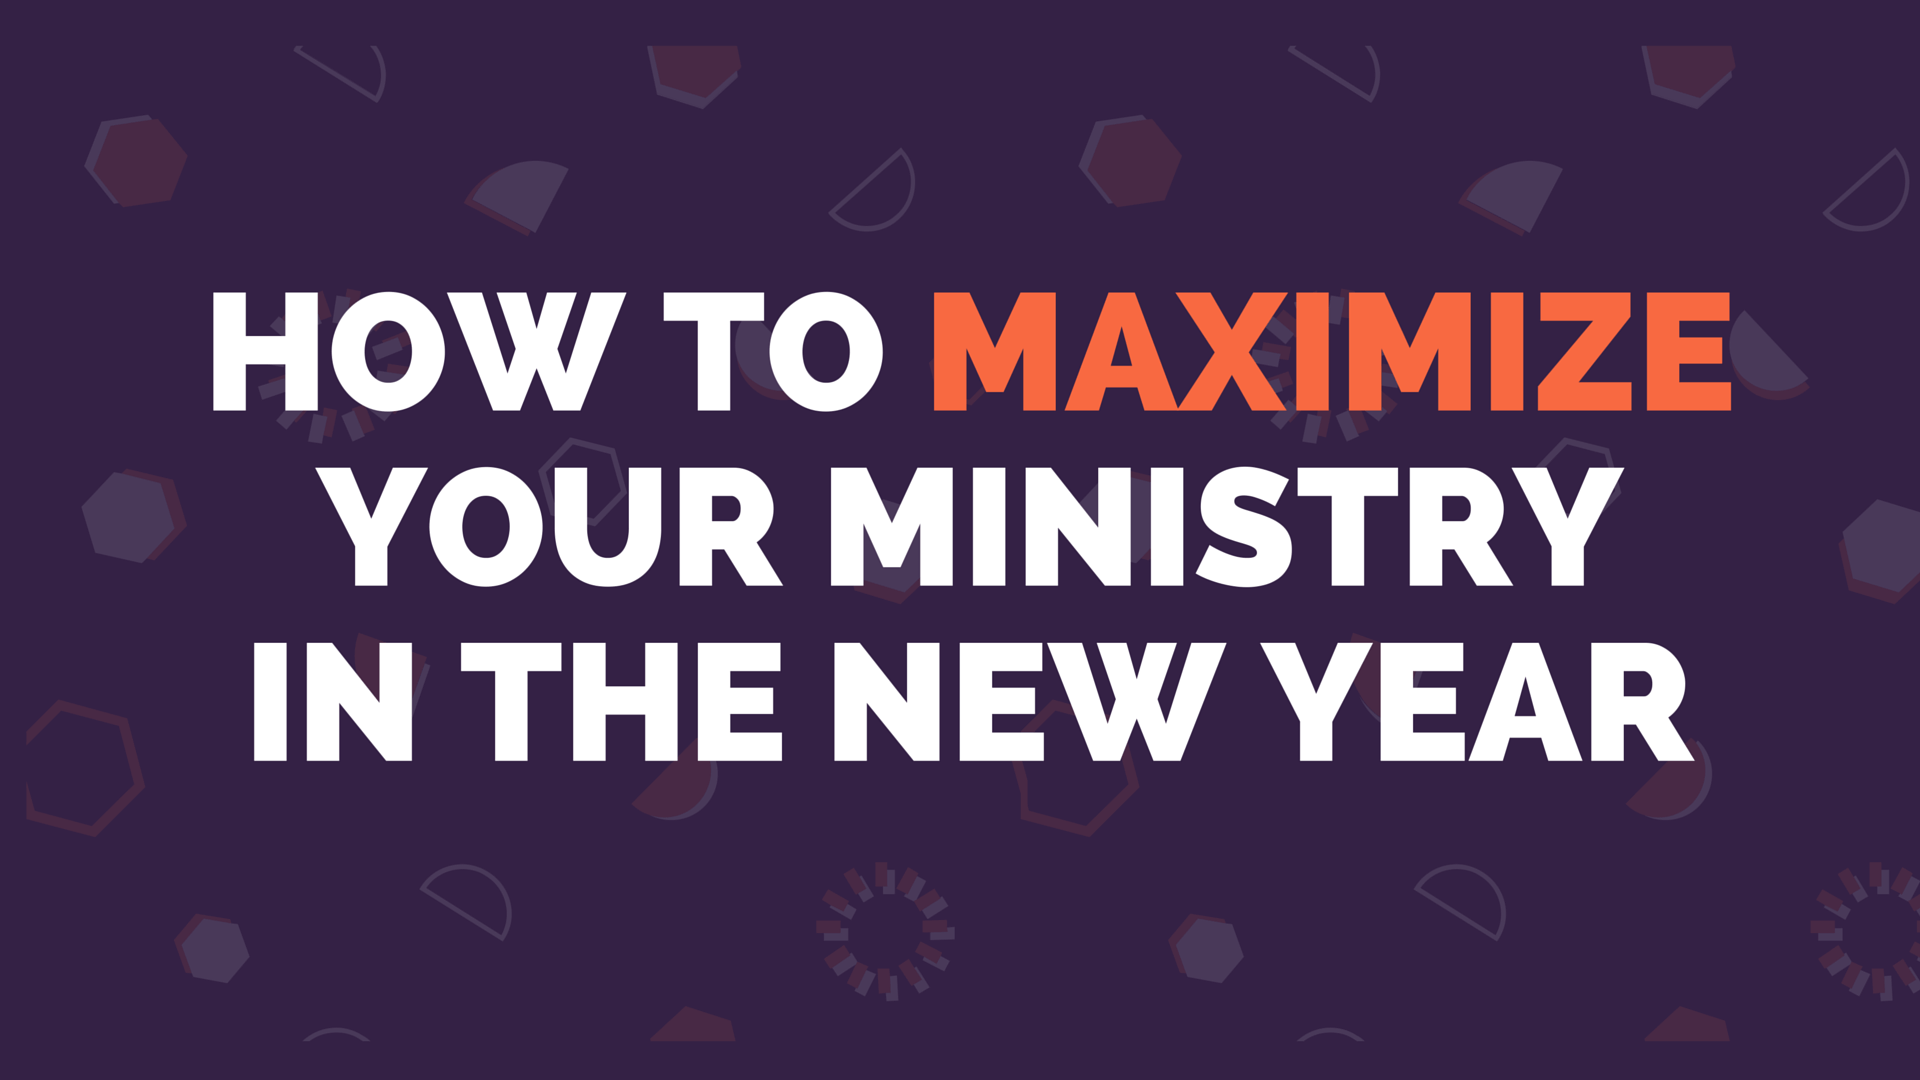 How to Maximize Your Ministry in the New Year